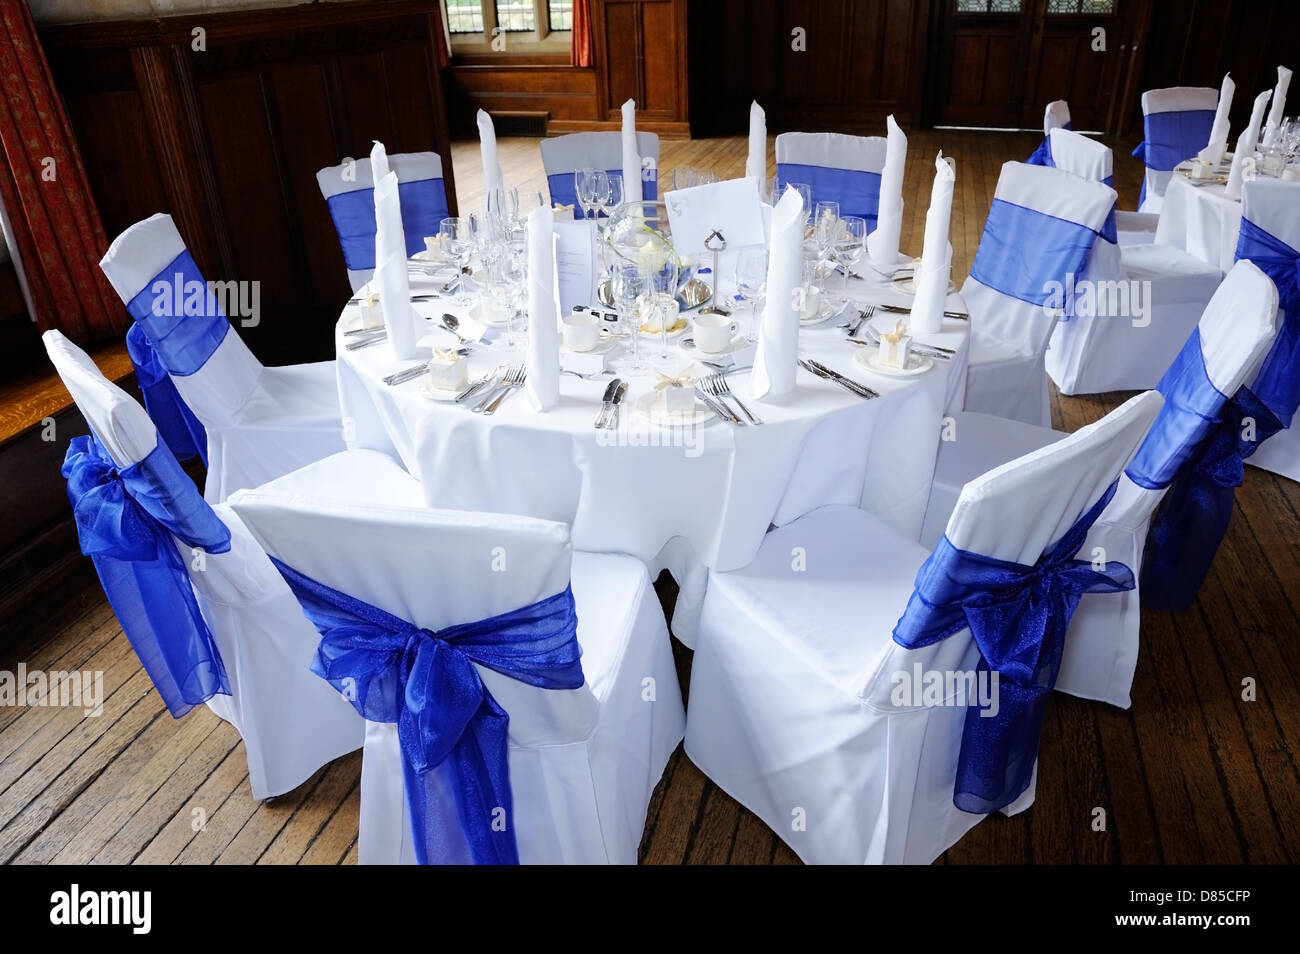 White Chairs At A Wedding Indoor Stock Photo: Table And Chairs Decorated In Blue And White At Wedding